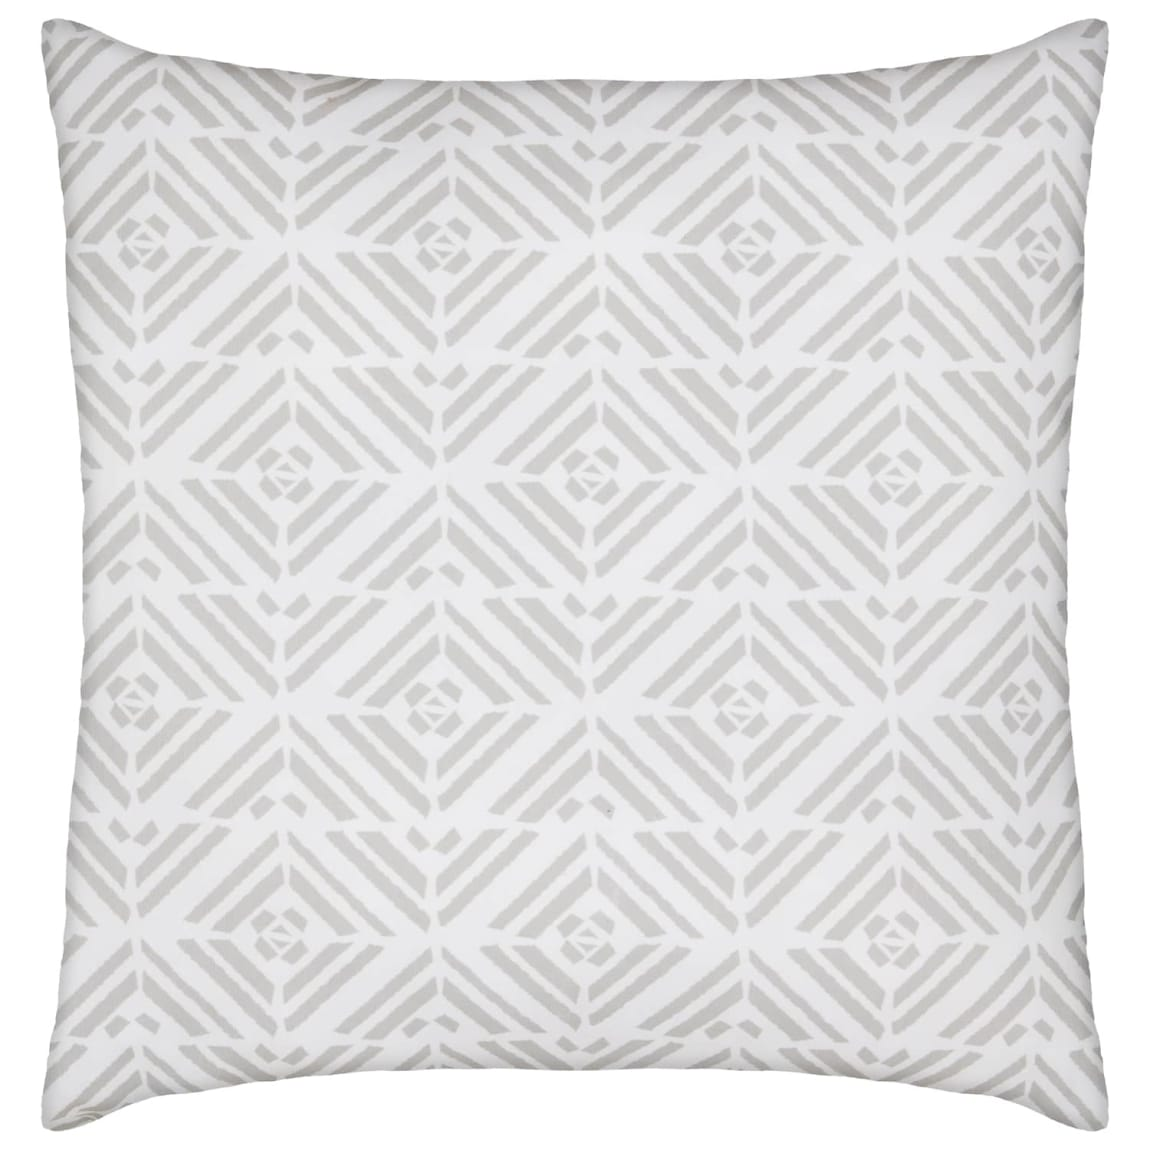 Outdoor Boho Scatter Cushion - Geo